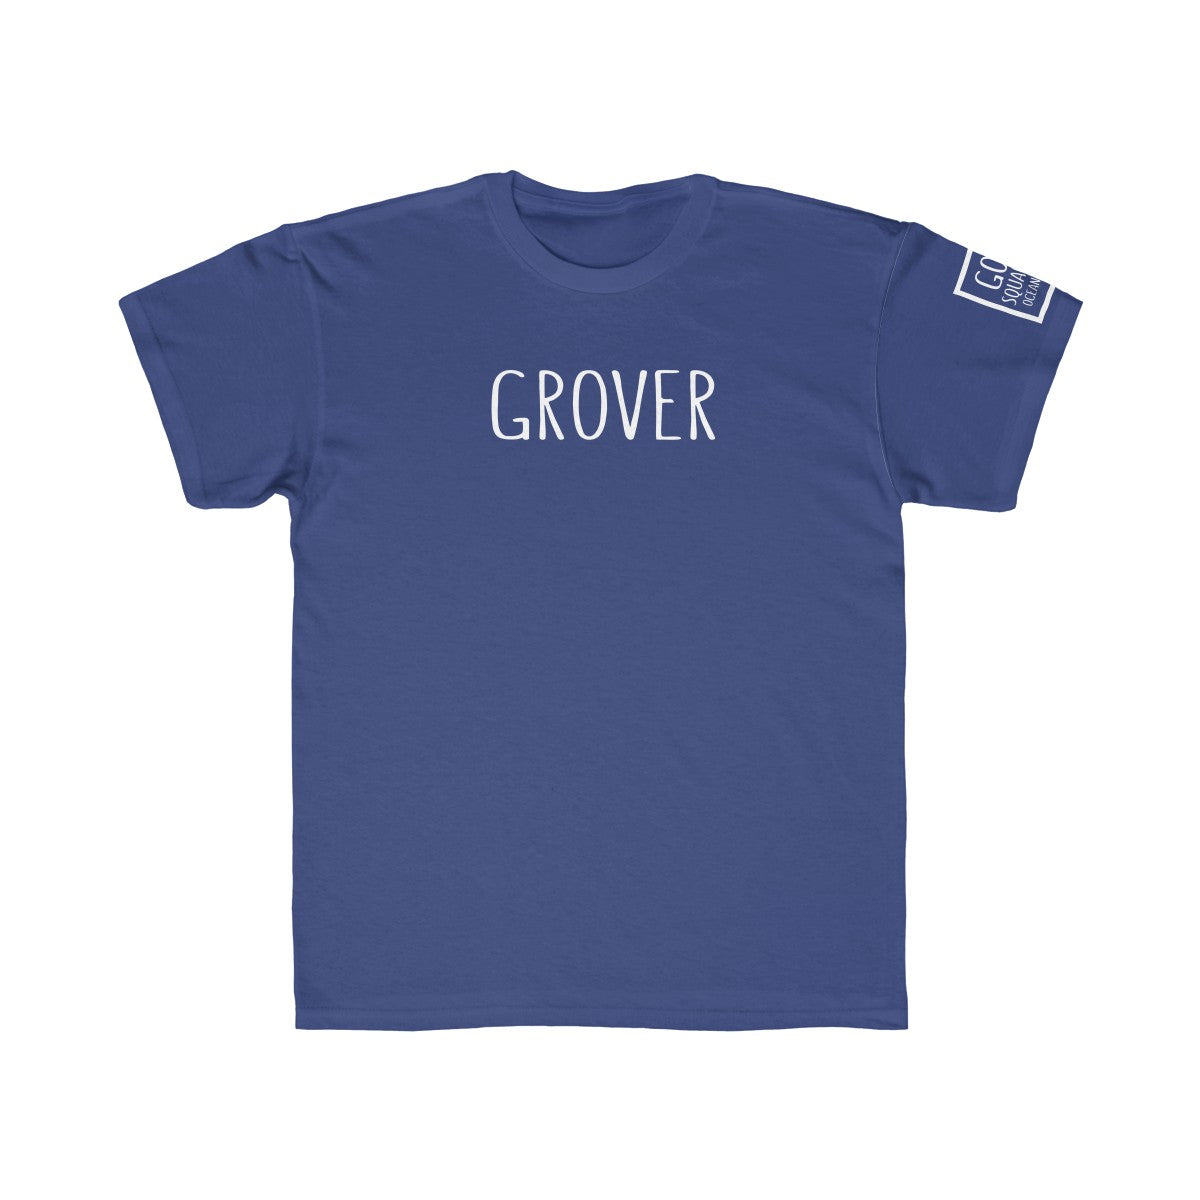 Grover Kids T-shirt: Multiple Colors